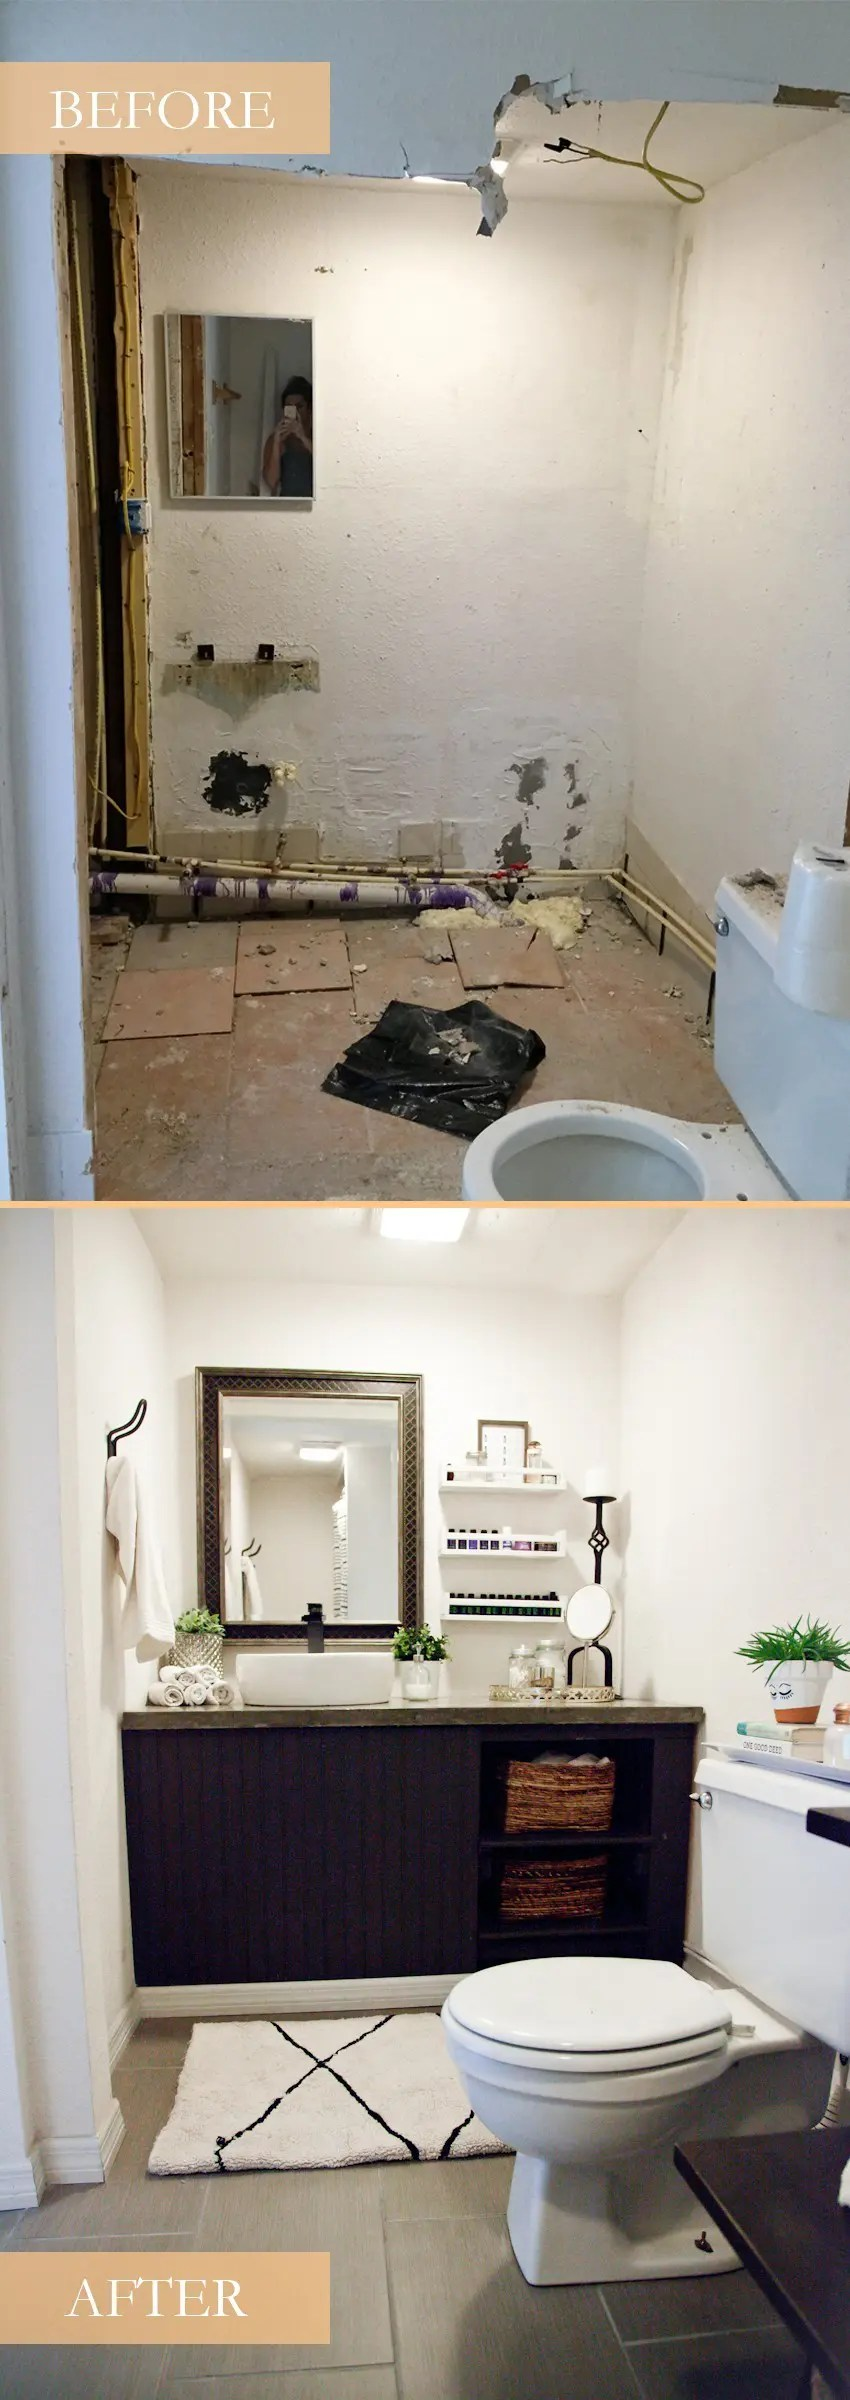 Remodel Bathroom Blog our studio bathroom remodel: a before and after - fresh mommy blog